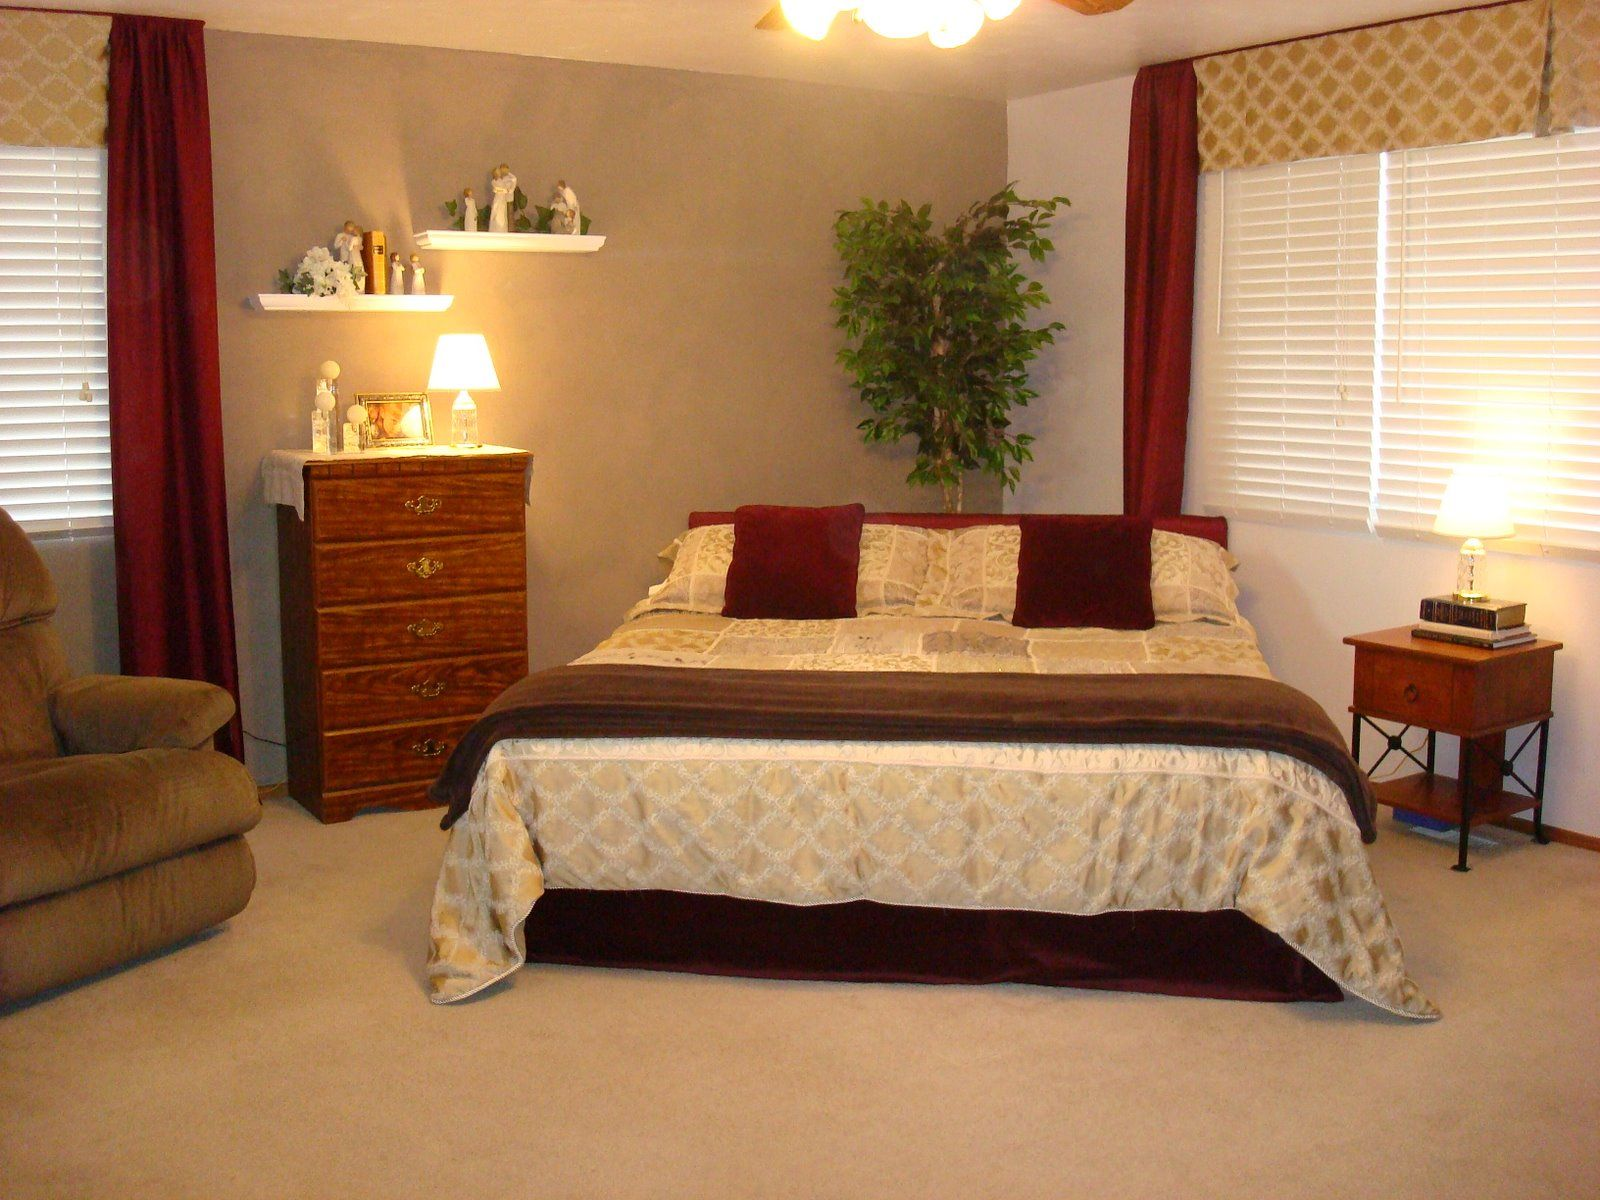 Corner bed placement idea revamping my bedroom - How to arrange a small bedroom with a queen bed ...